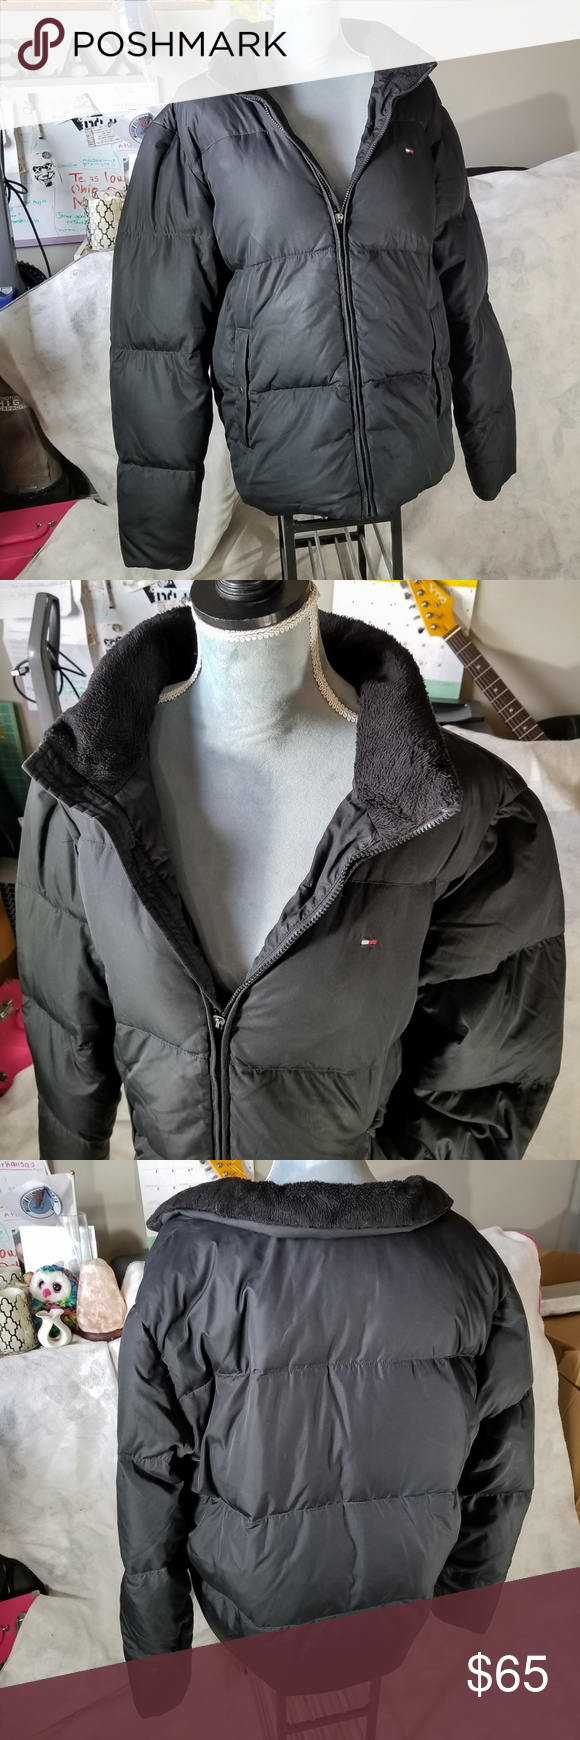 Tommy Hilfiger Down Feathers Winter Jacket Winter Jackets Tommy Hilfiger Clothes Design [ 1740 x 580 Pixel ]